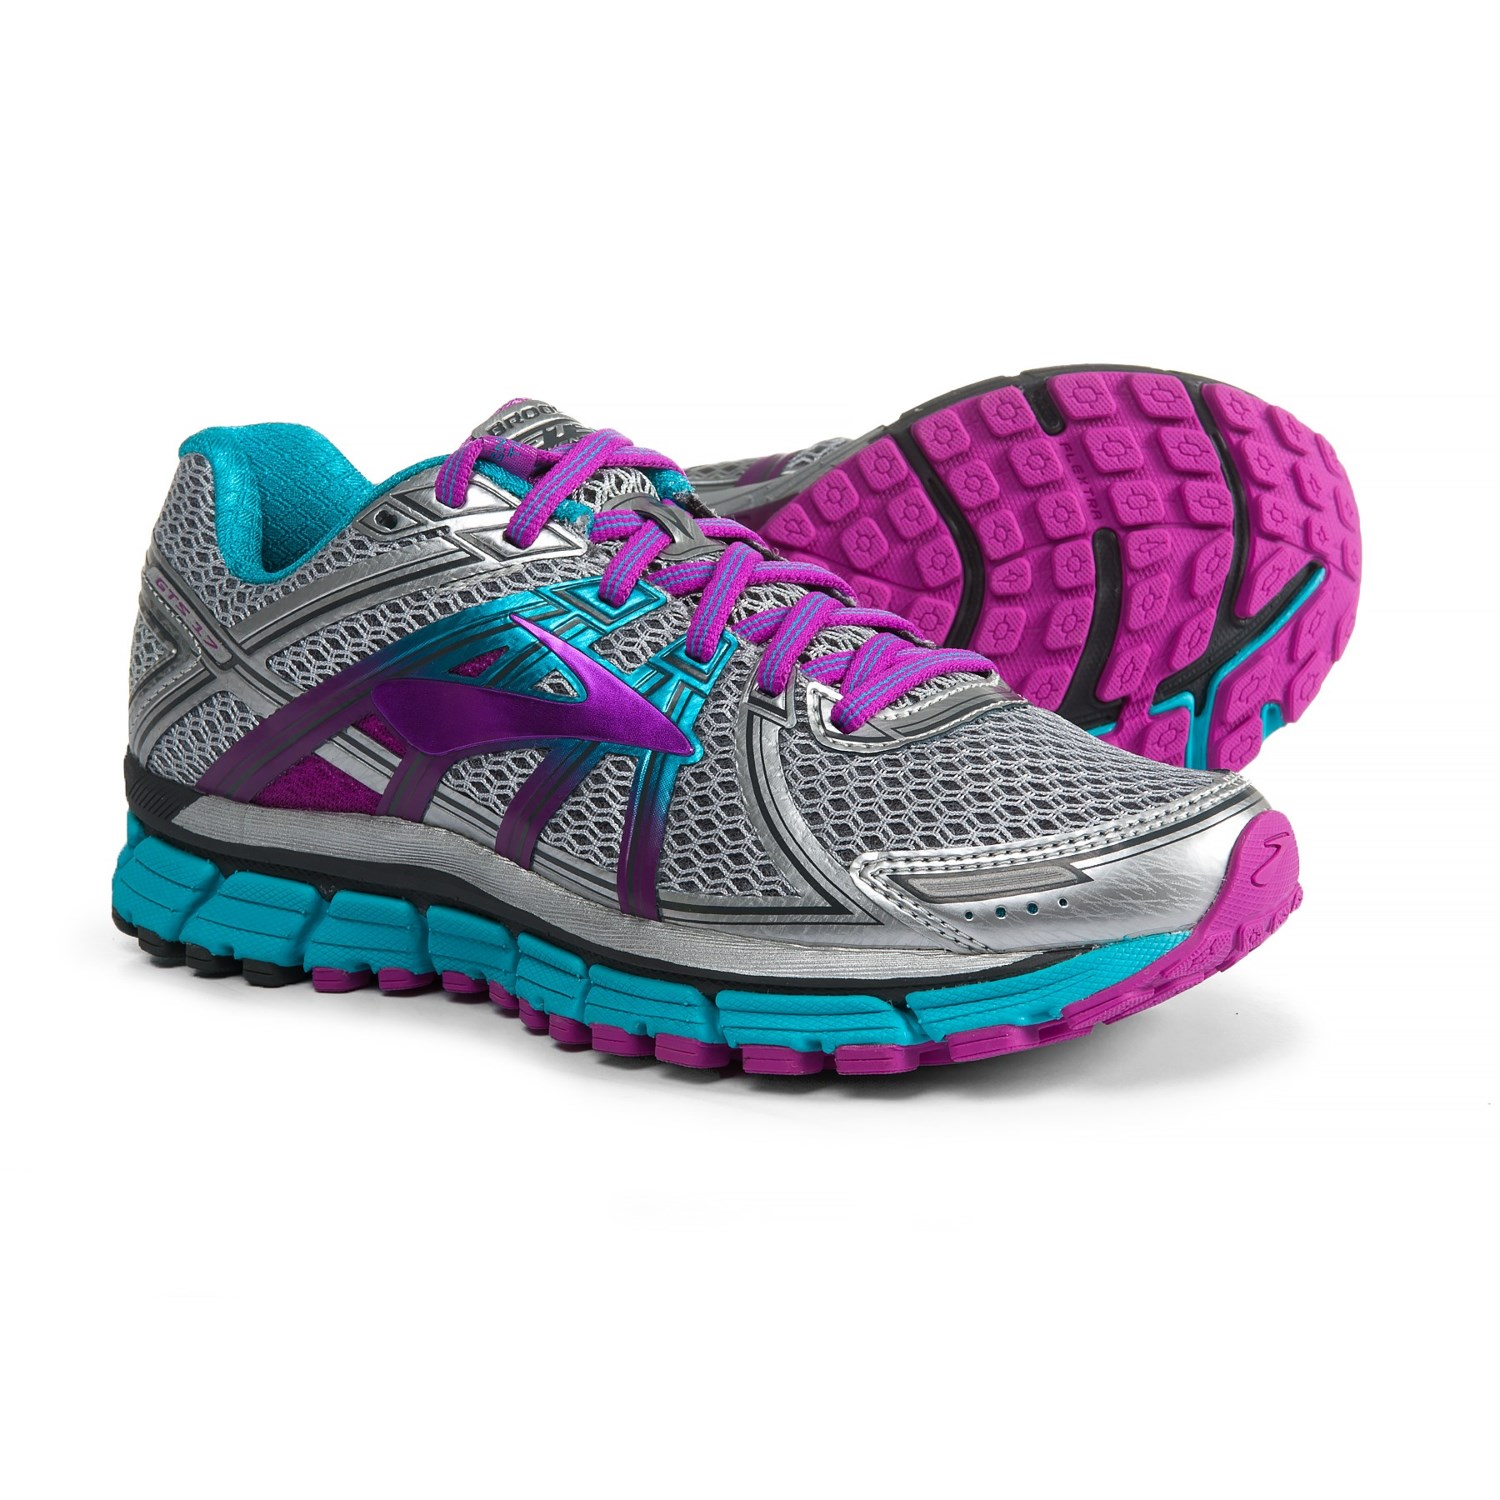 4e2a5d72789 Brooks Adrenaline GTS 17 Running Shoes (For Women) in Silver Purple Cactus  Flower